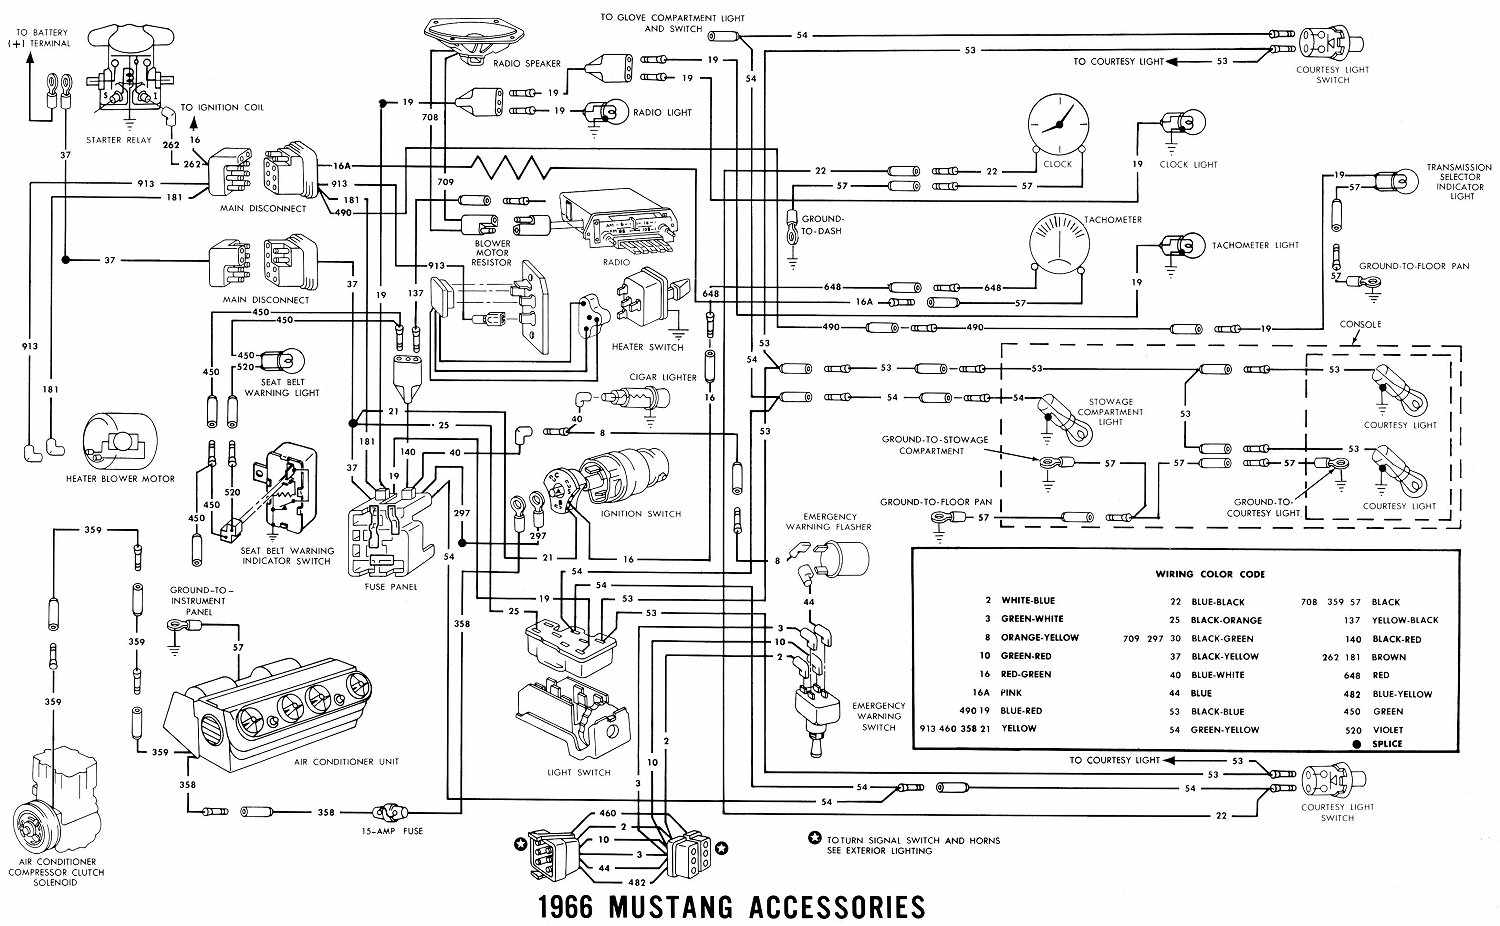 1966 Mustang Ke Line Diagram Wiring Schematic Opinions About Diagrams For 66 Bronco Distributor Accessories Simple Rh David Huggett Co Uk